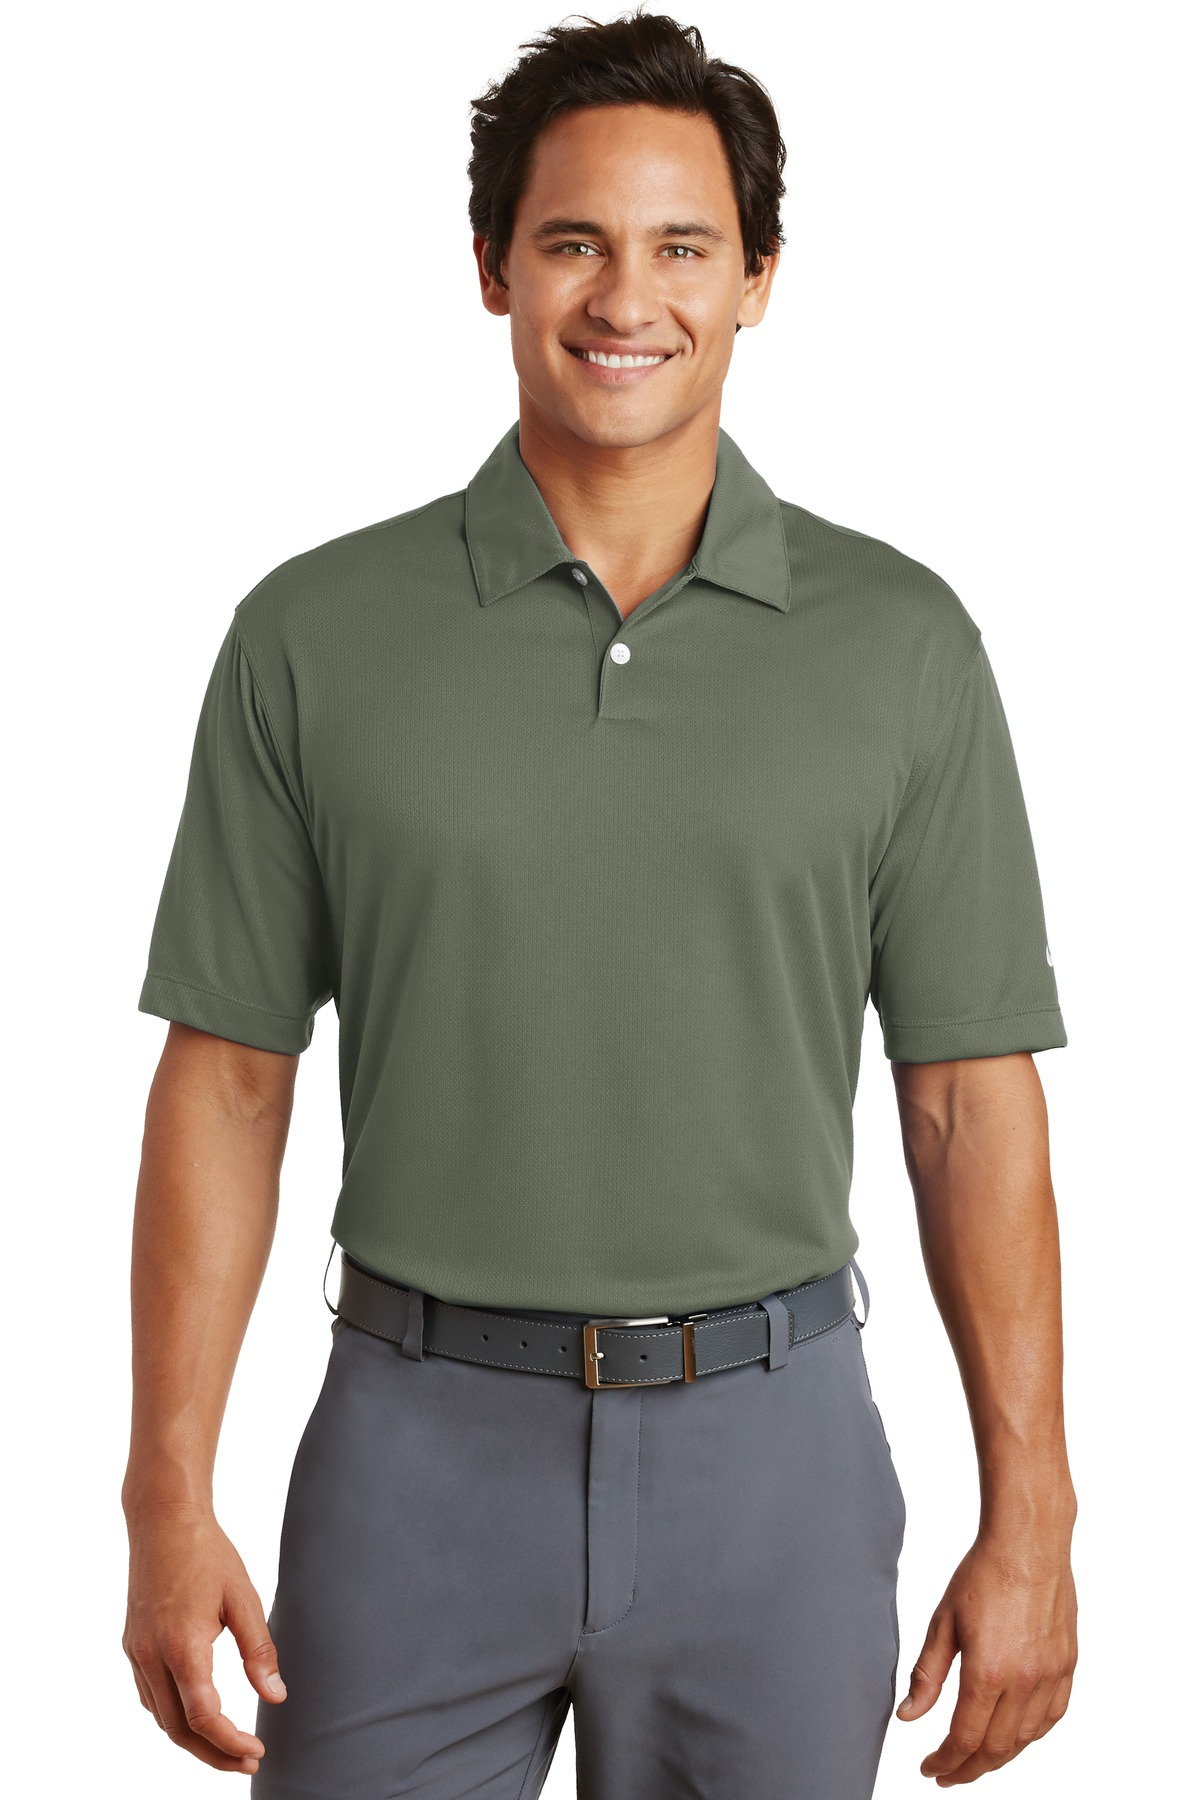 Nike Dri-FIT Pebble Texture Polo. 373749 - Vintage Lichen